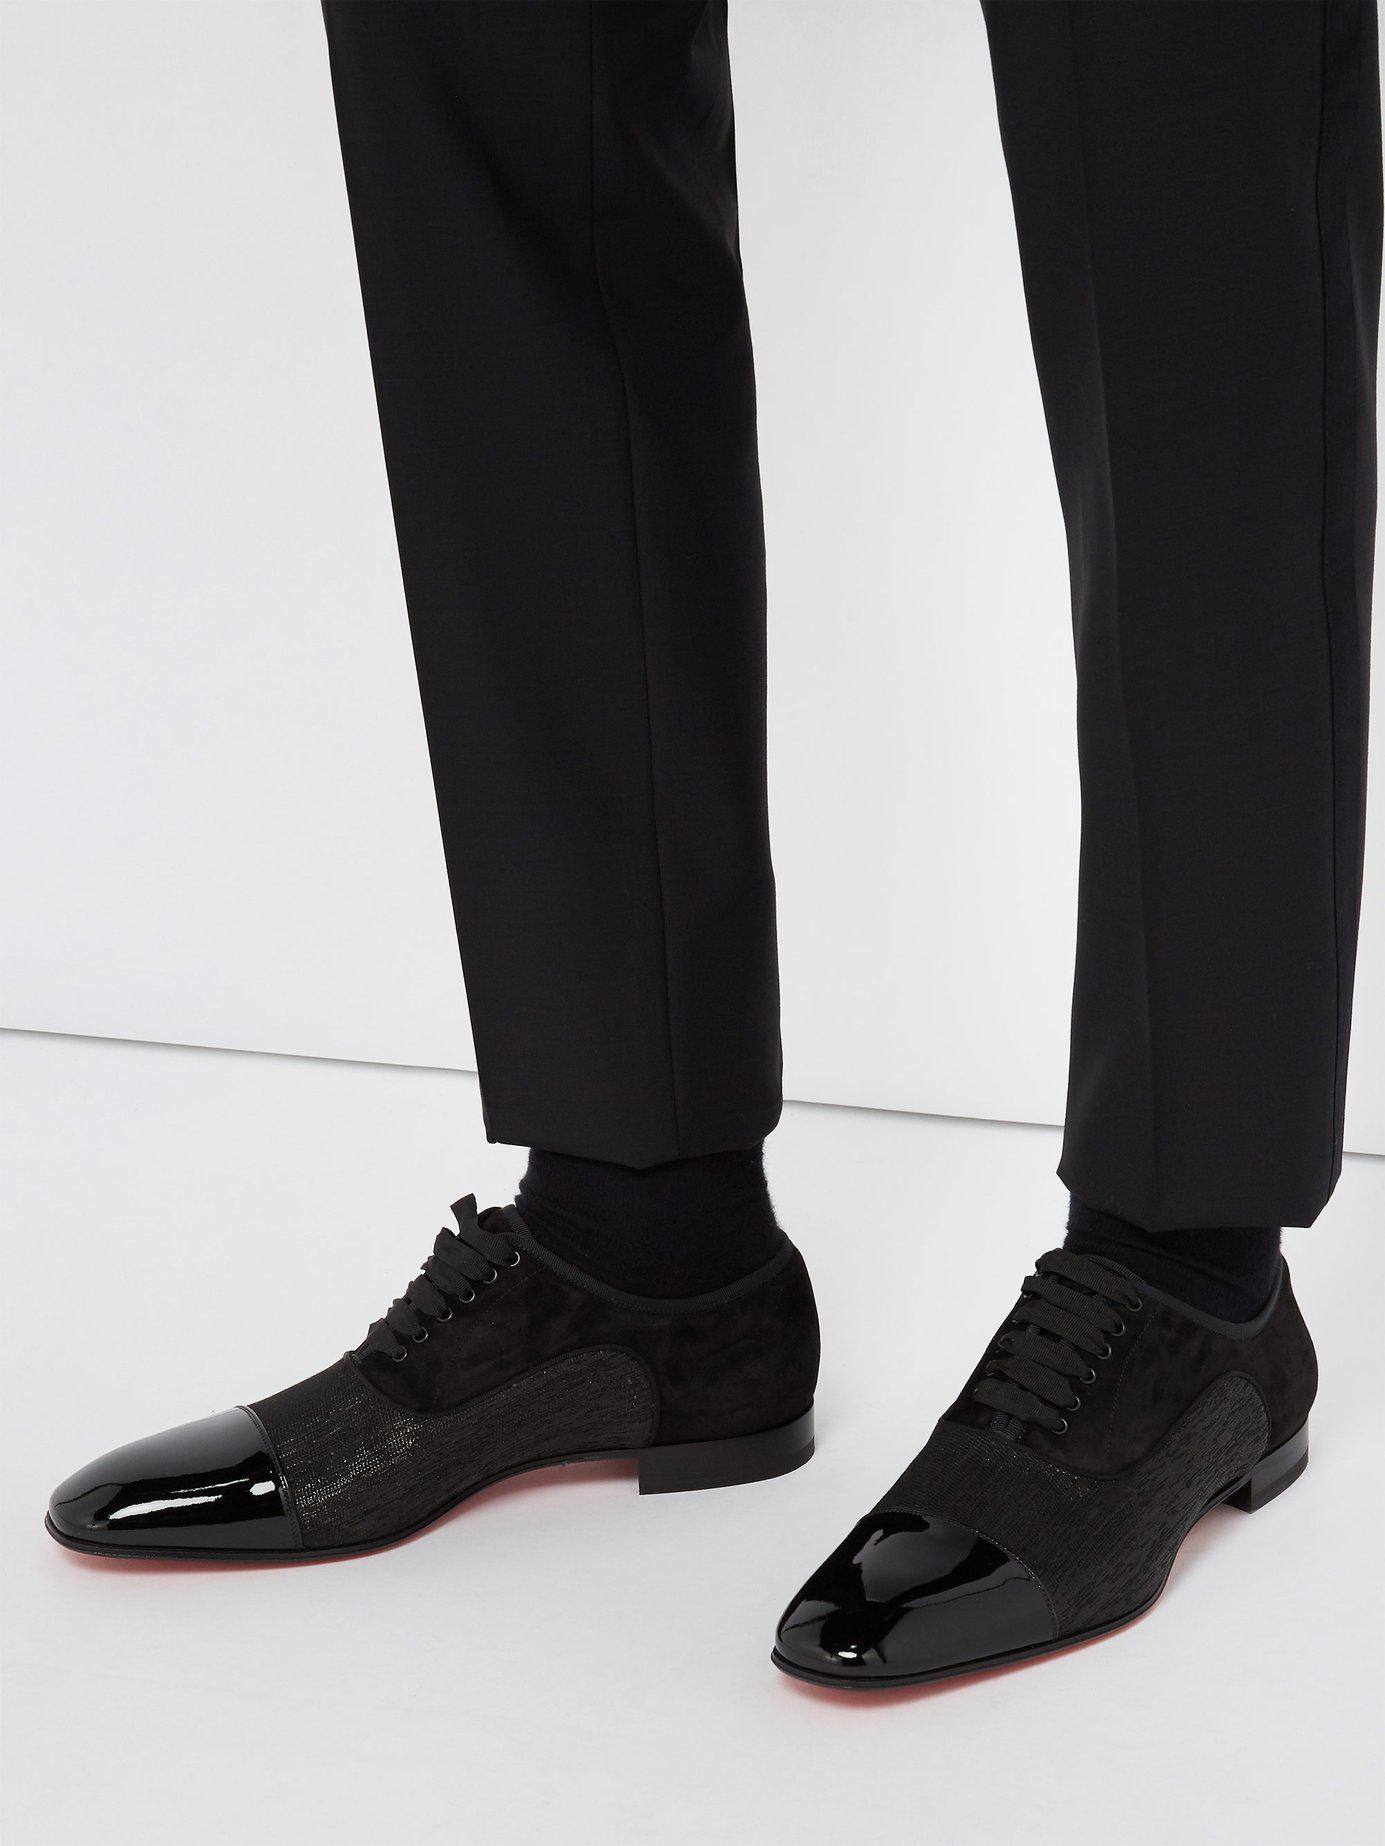 2fb083ebc2d Lyst - Christian Louboutin Greggo Orlato Patent Leather Oxford Shoes in  Black for Men